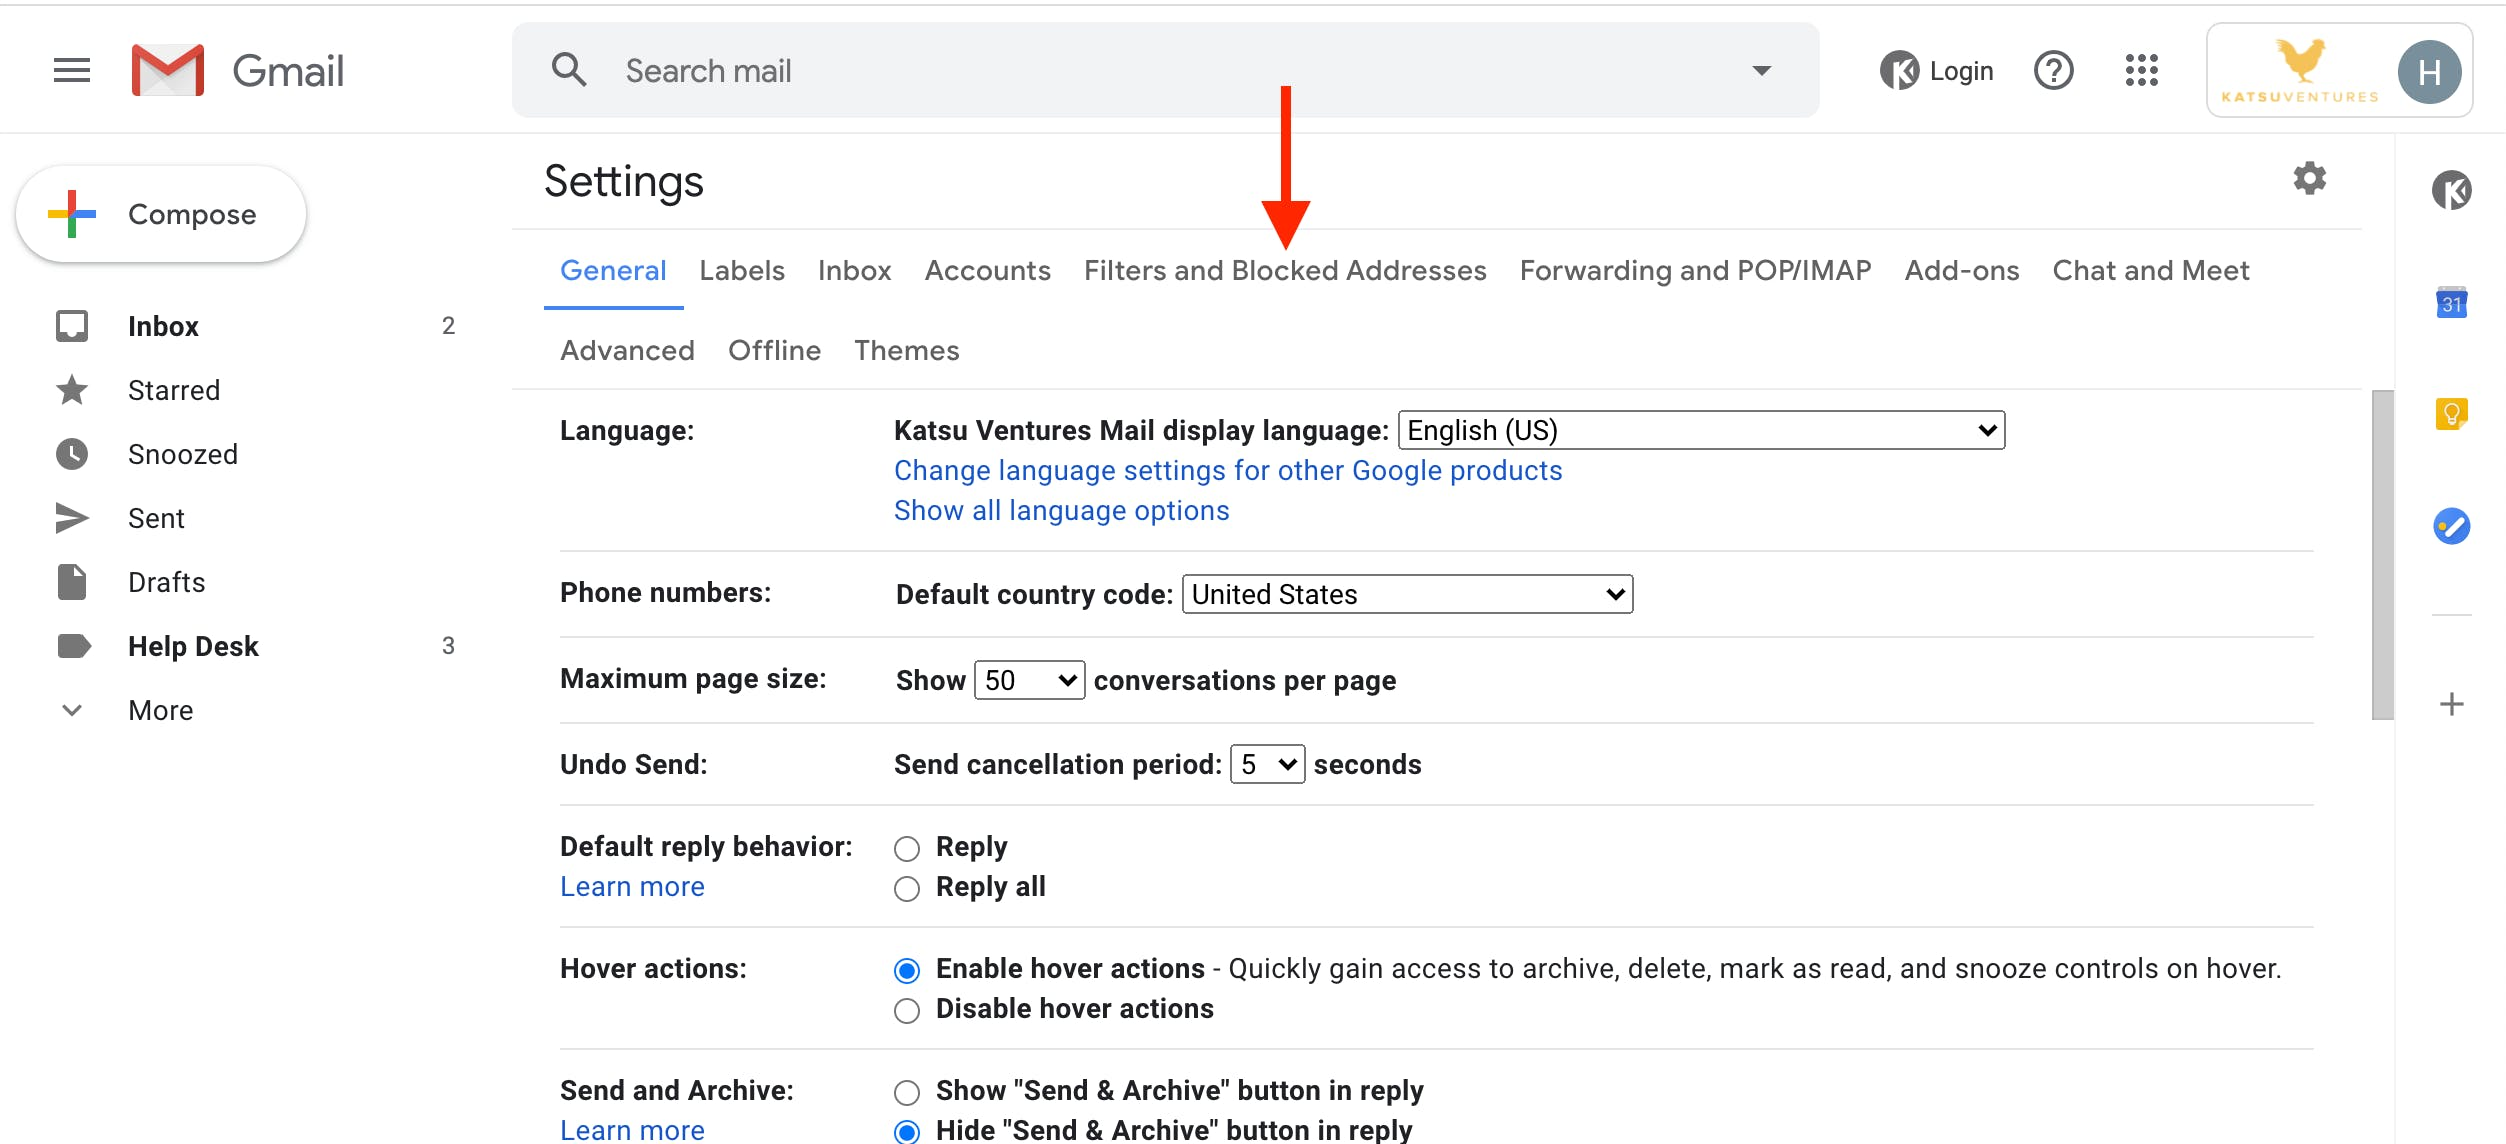 Choose Filters and Blocked Addresses